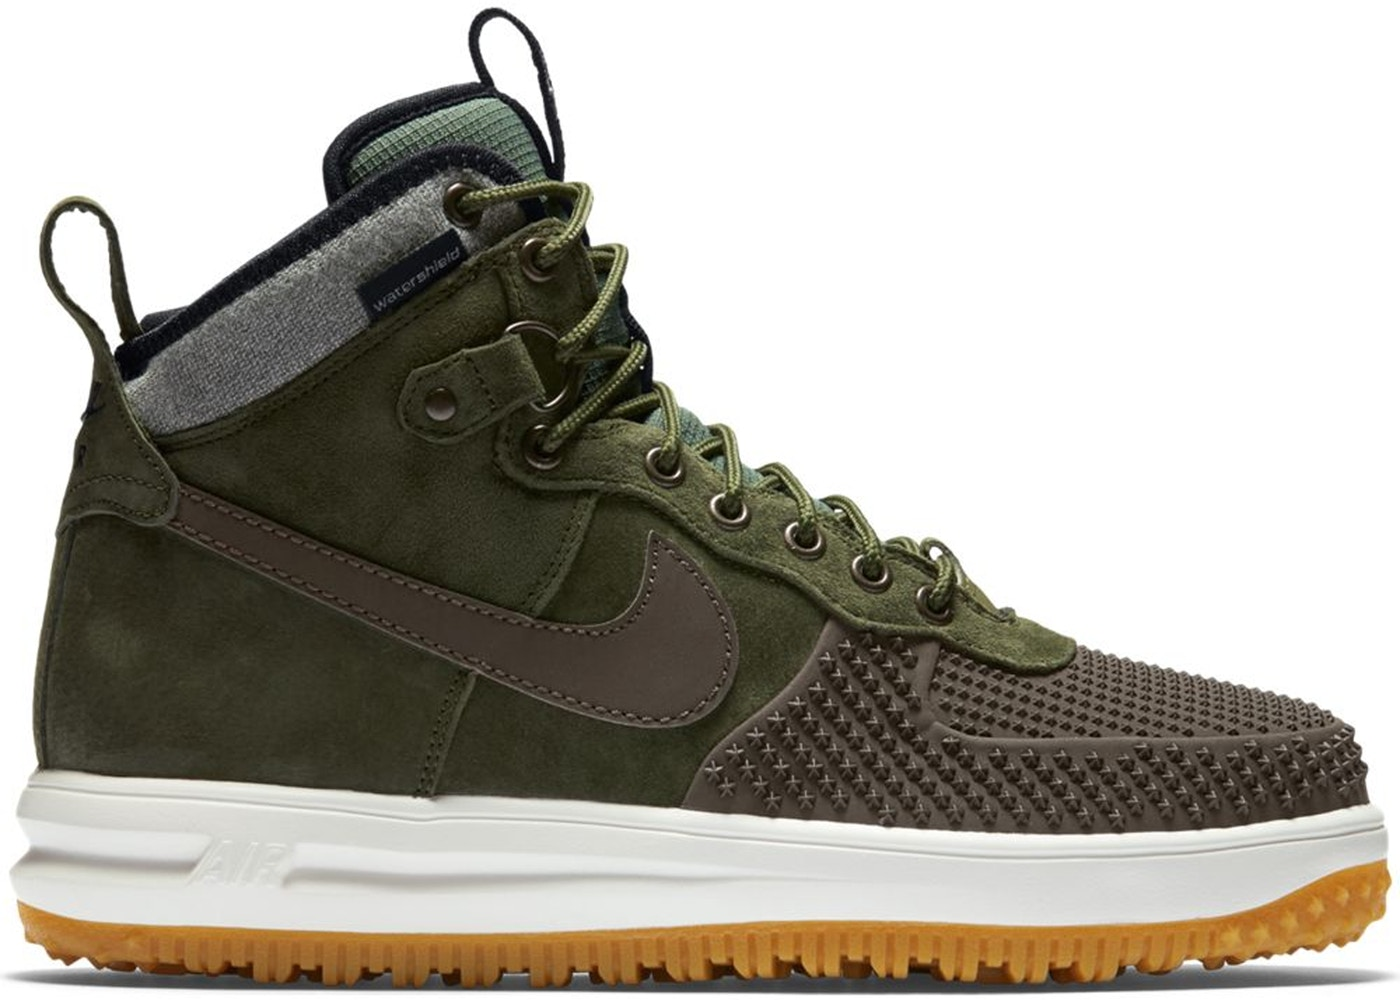 huge selection of 897fd 6b2dd Nike Lunar Force 1 Duckboot Baroque Brown Army Olive